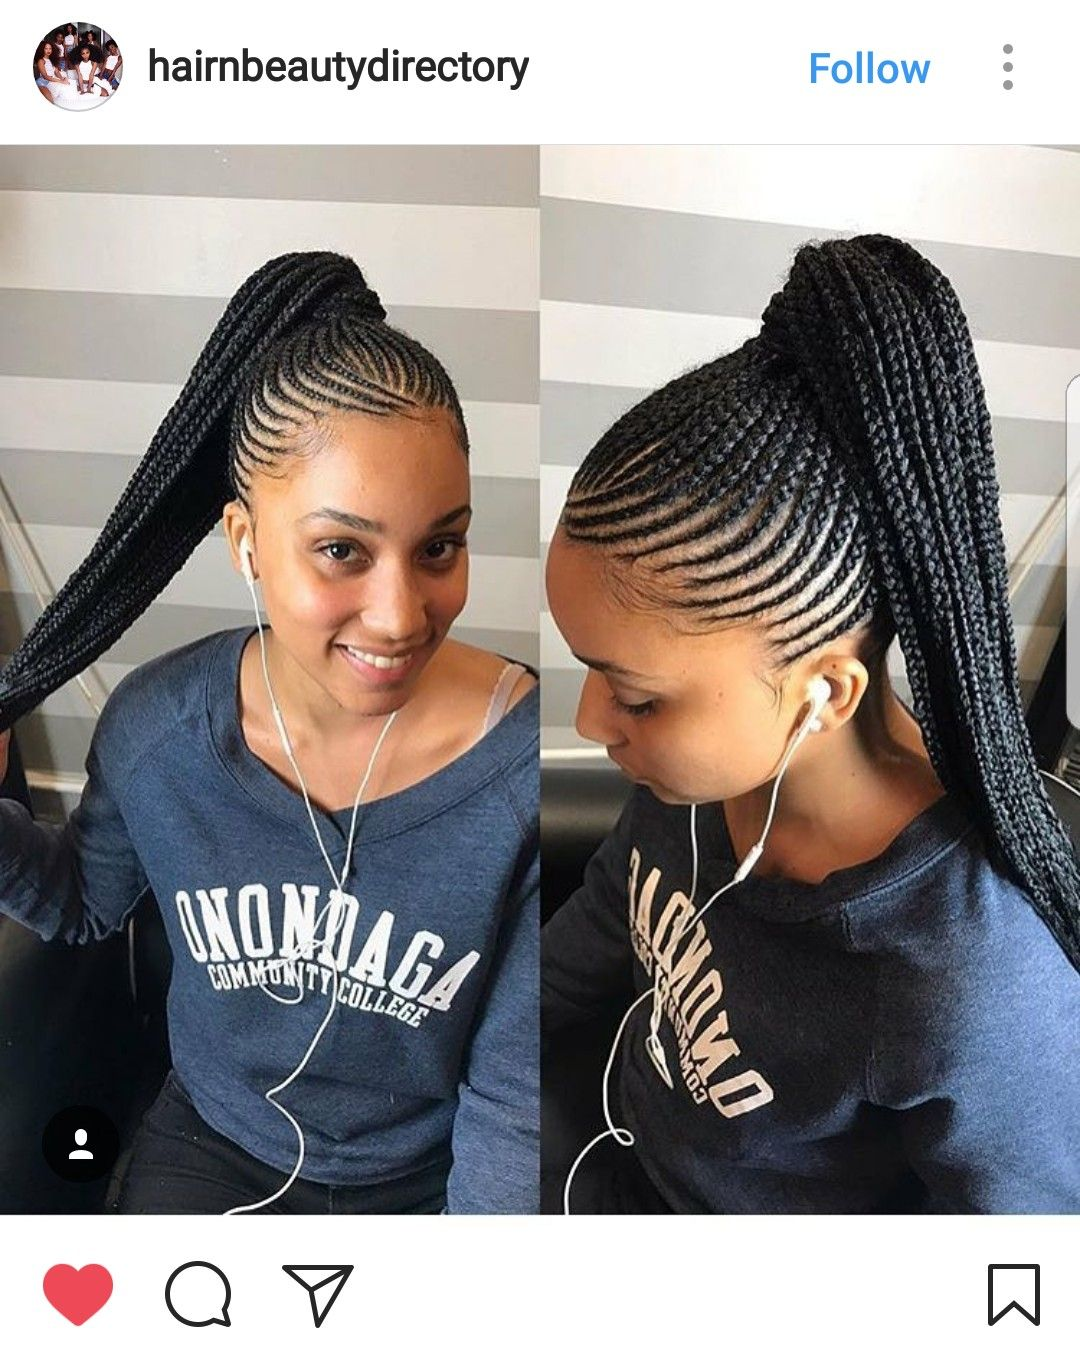 Pin by hafanda on braid | Braided ponytail hairstyles, African braids hairstyles, Braids for ...